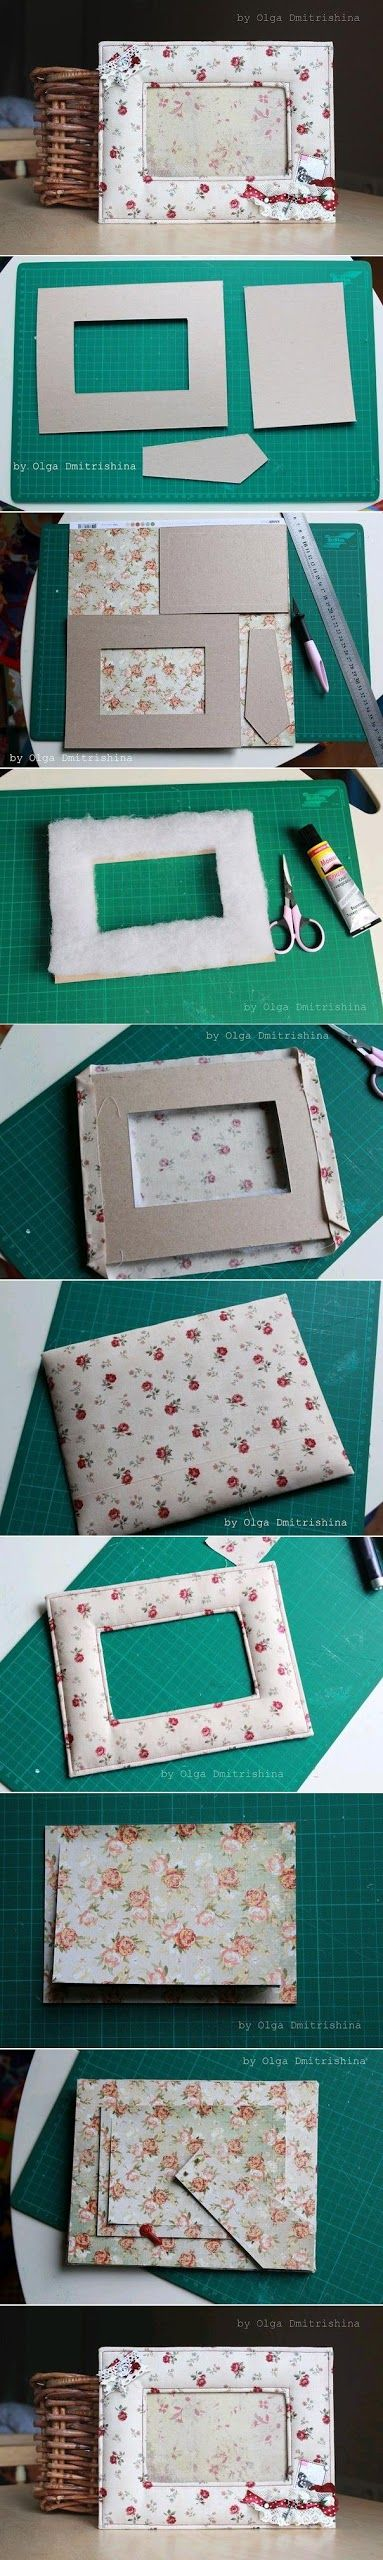 DIY Nice Soft Photo Frame